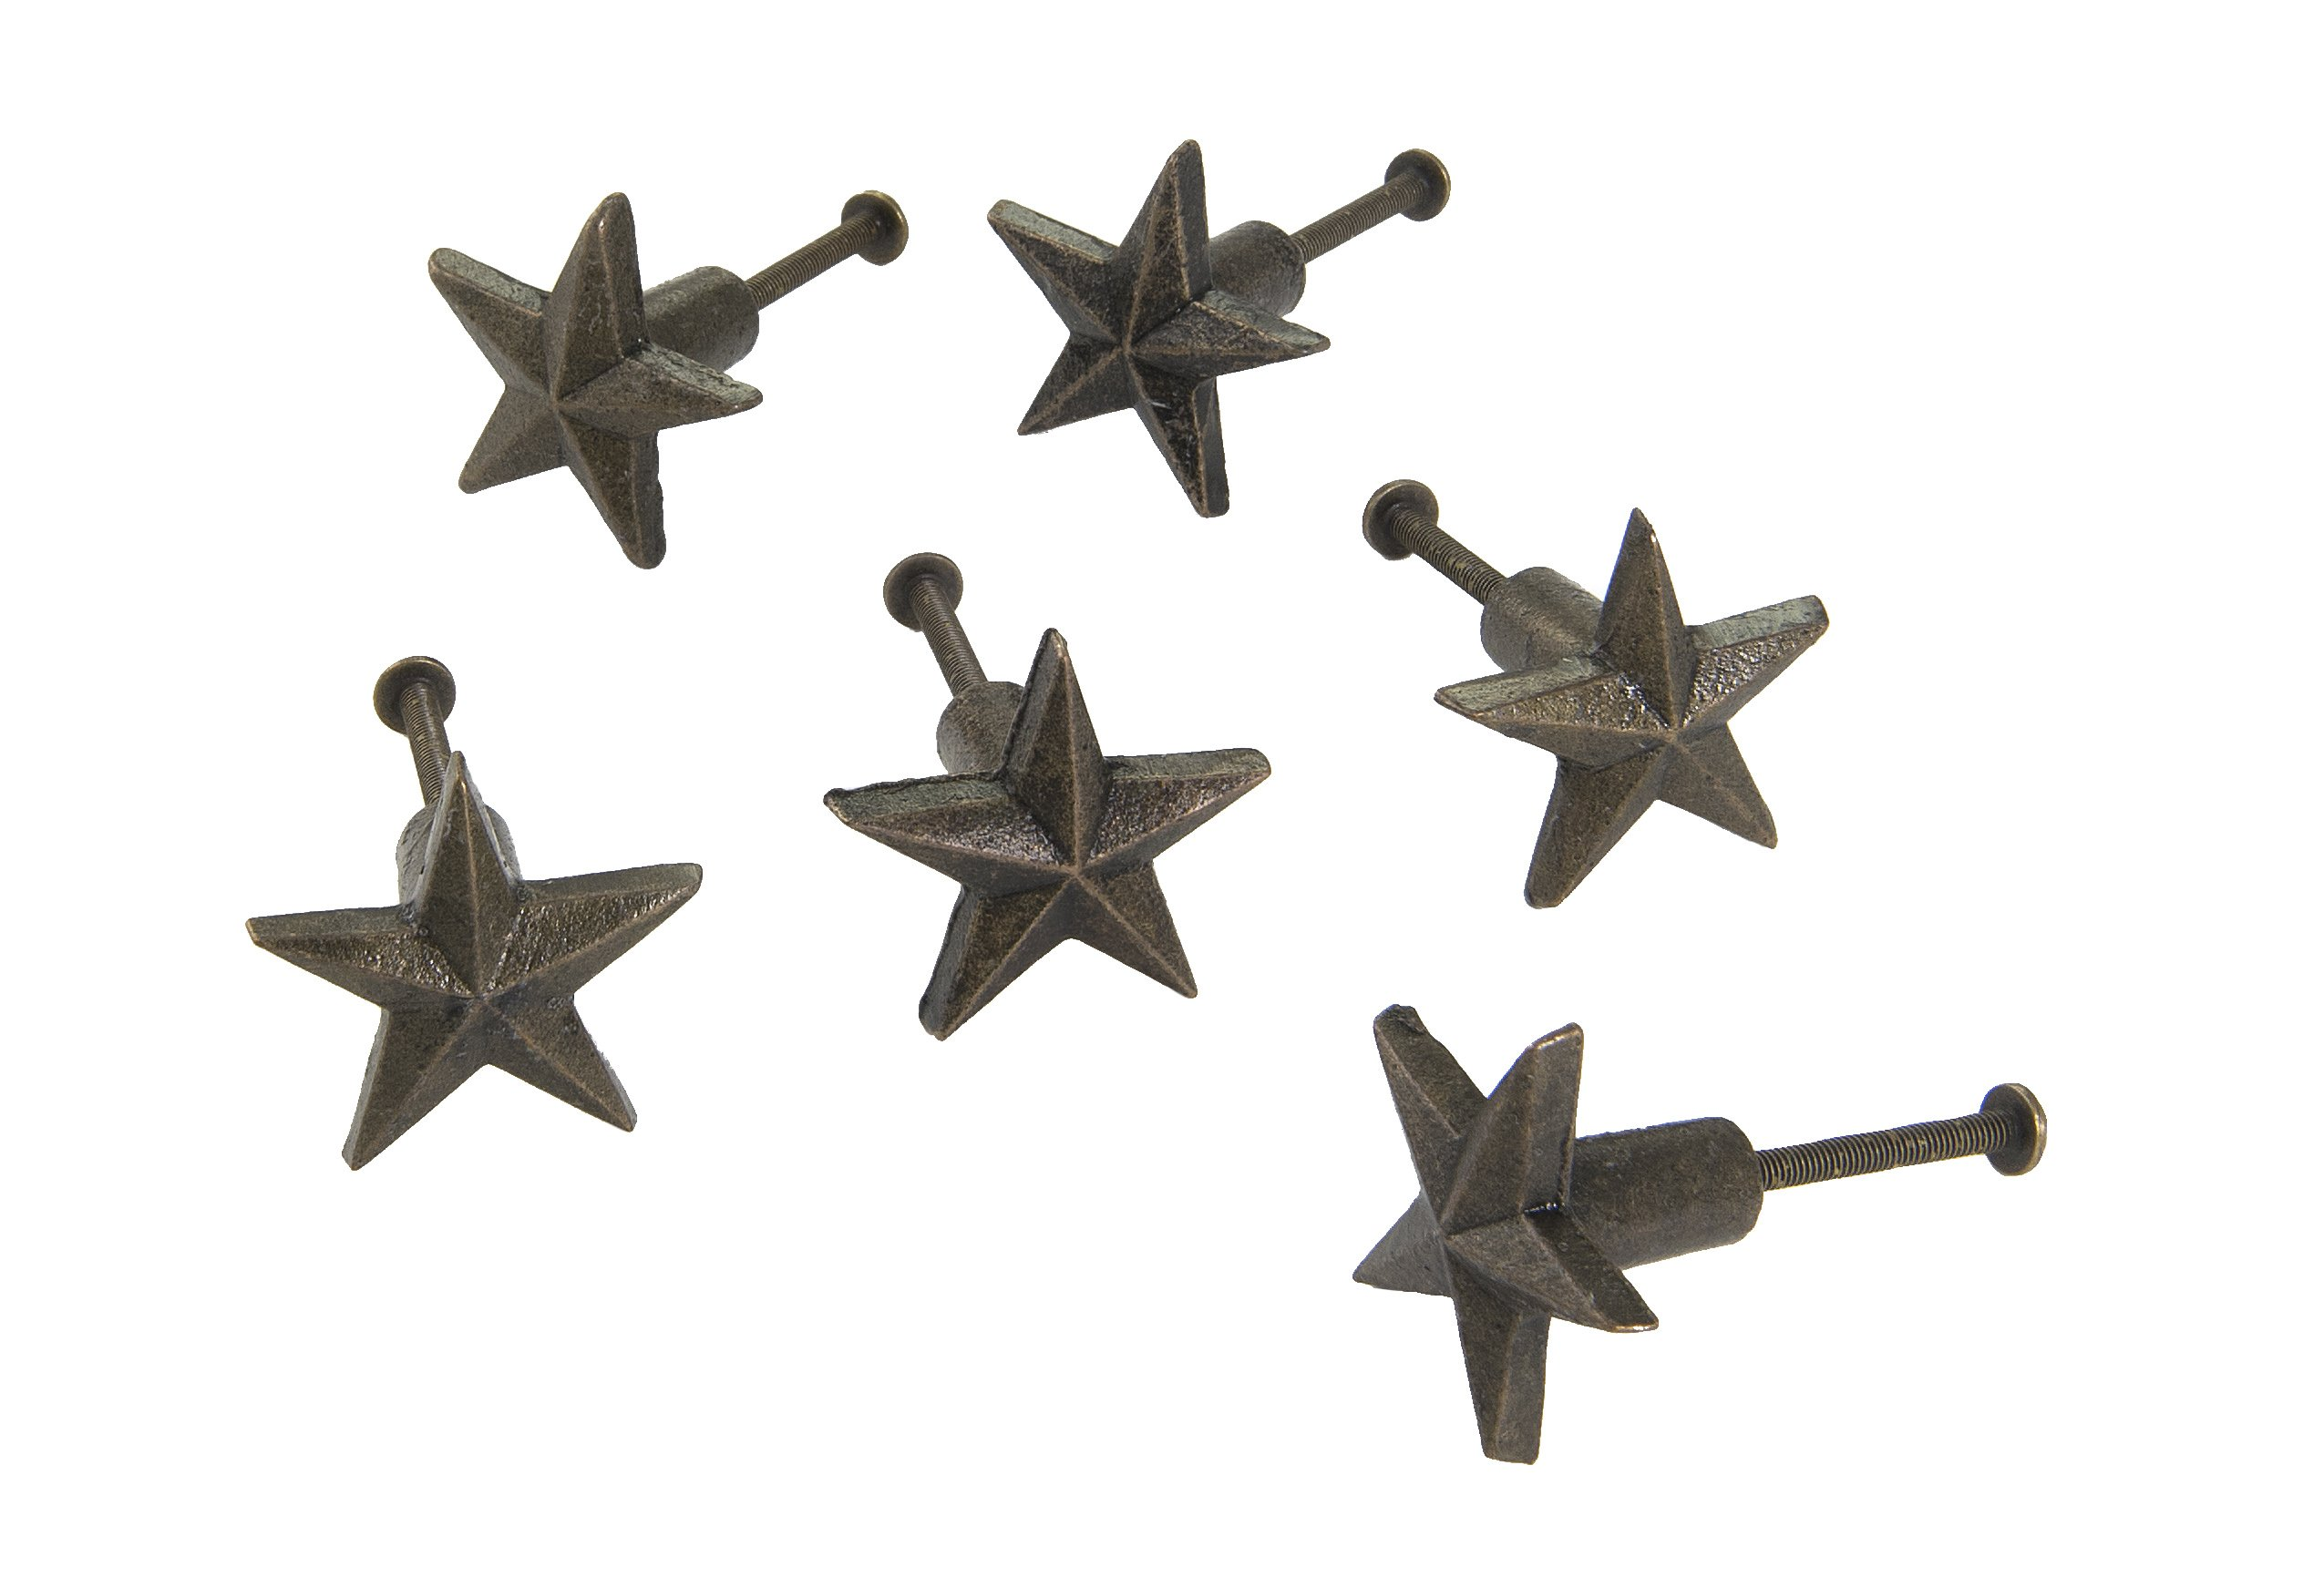 Dritz Home 47066A Cast Iron Star Knob Handcrafted Knobs for Cabinets & Drawers